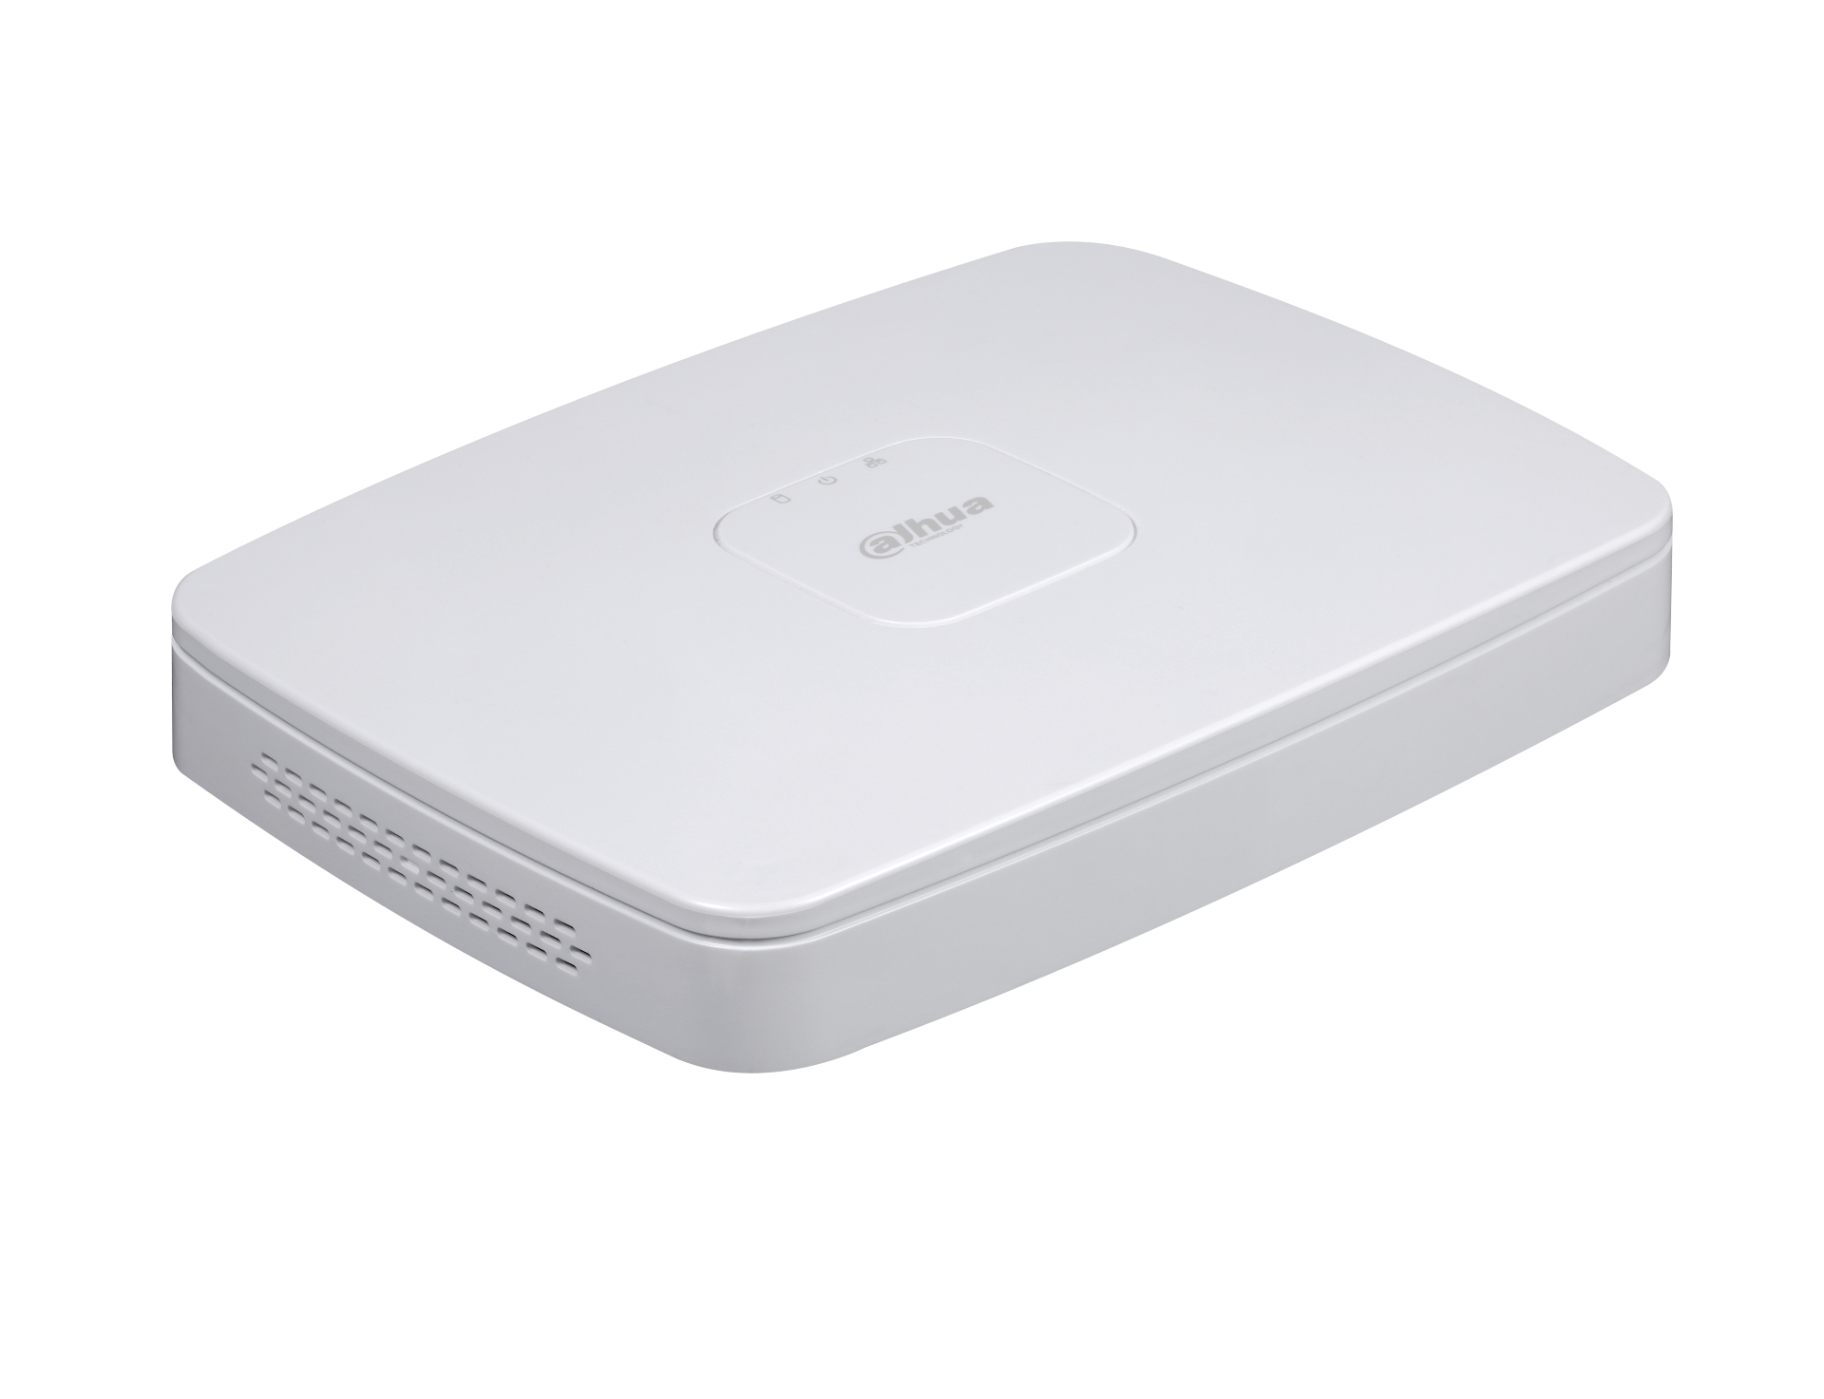 DAHUA Lite 8Ch Smart, 1HDD, 4K, H.265, 80Mbps, 8 PoE, HDD Not included  (PER NVR)